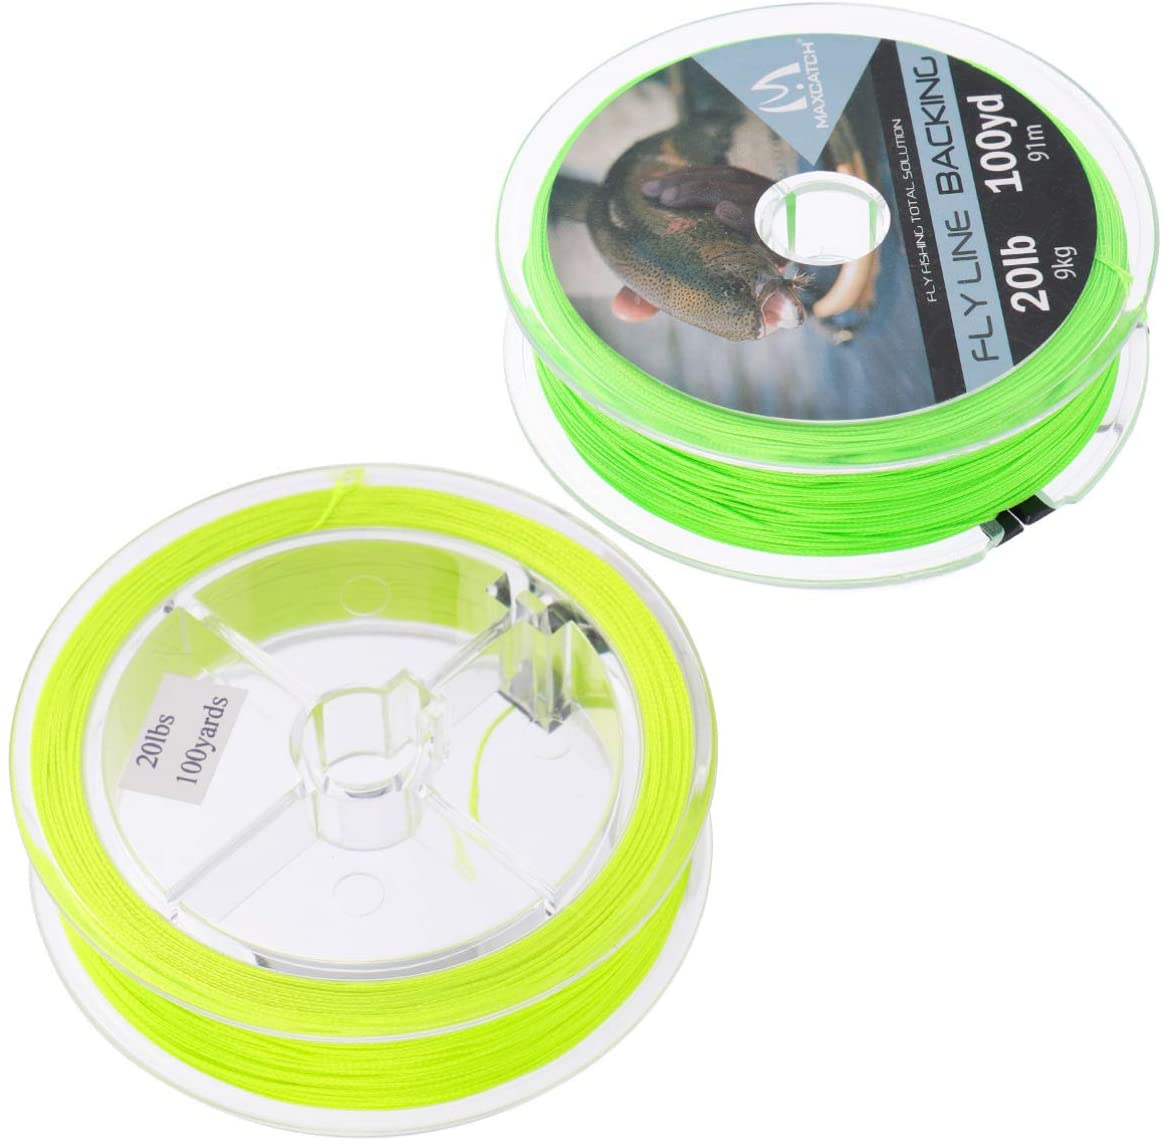 BESPORTBLE 2pcs Fly Fishing Line Fishing Floating Line Perception Line Extension for Saltwater Freshwater 100 Yard (Yellow Green)